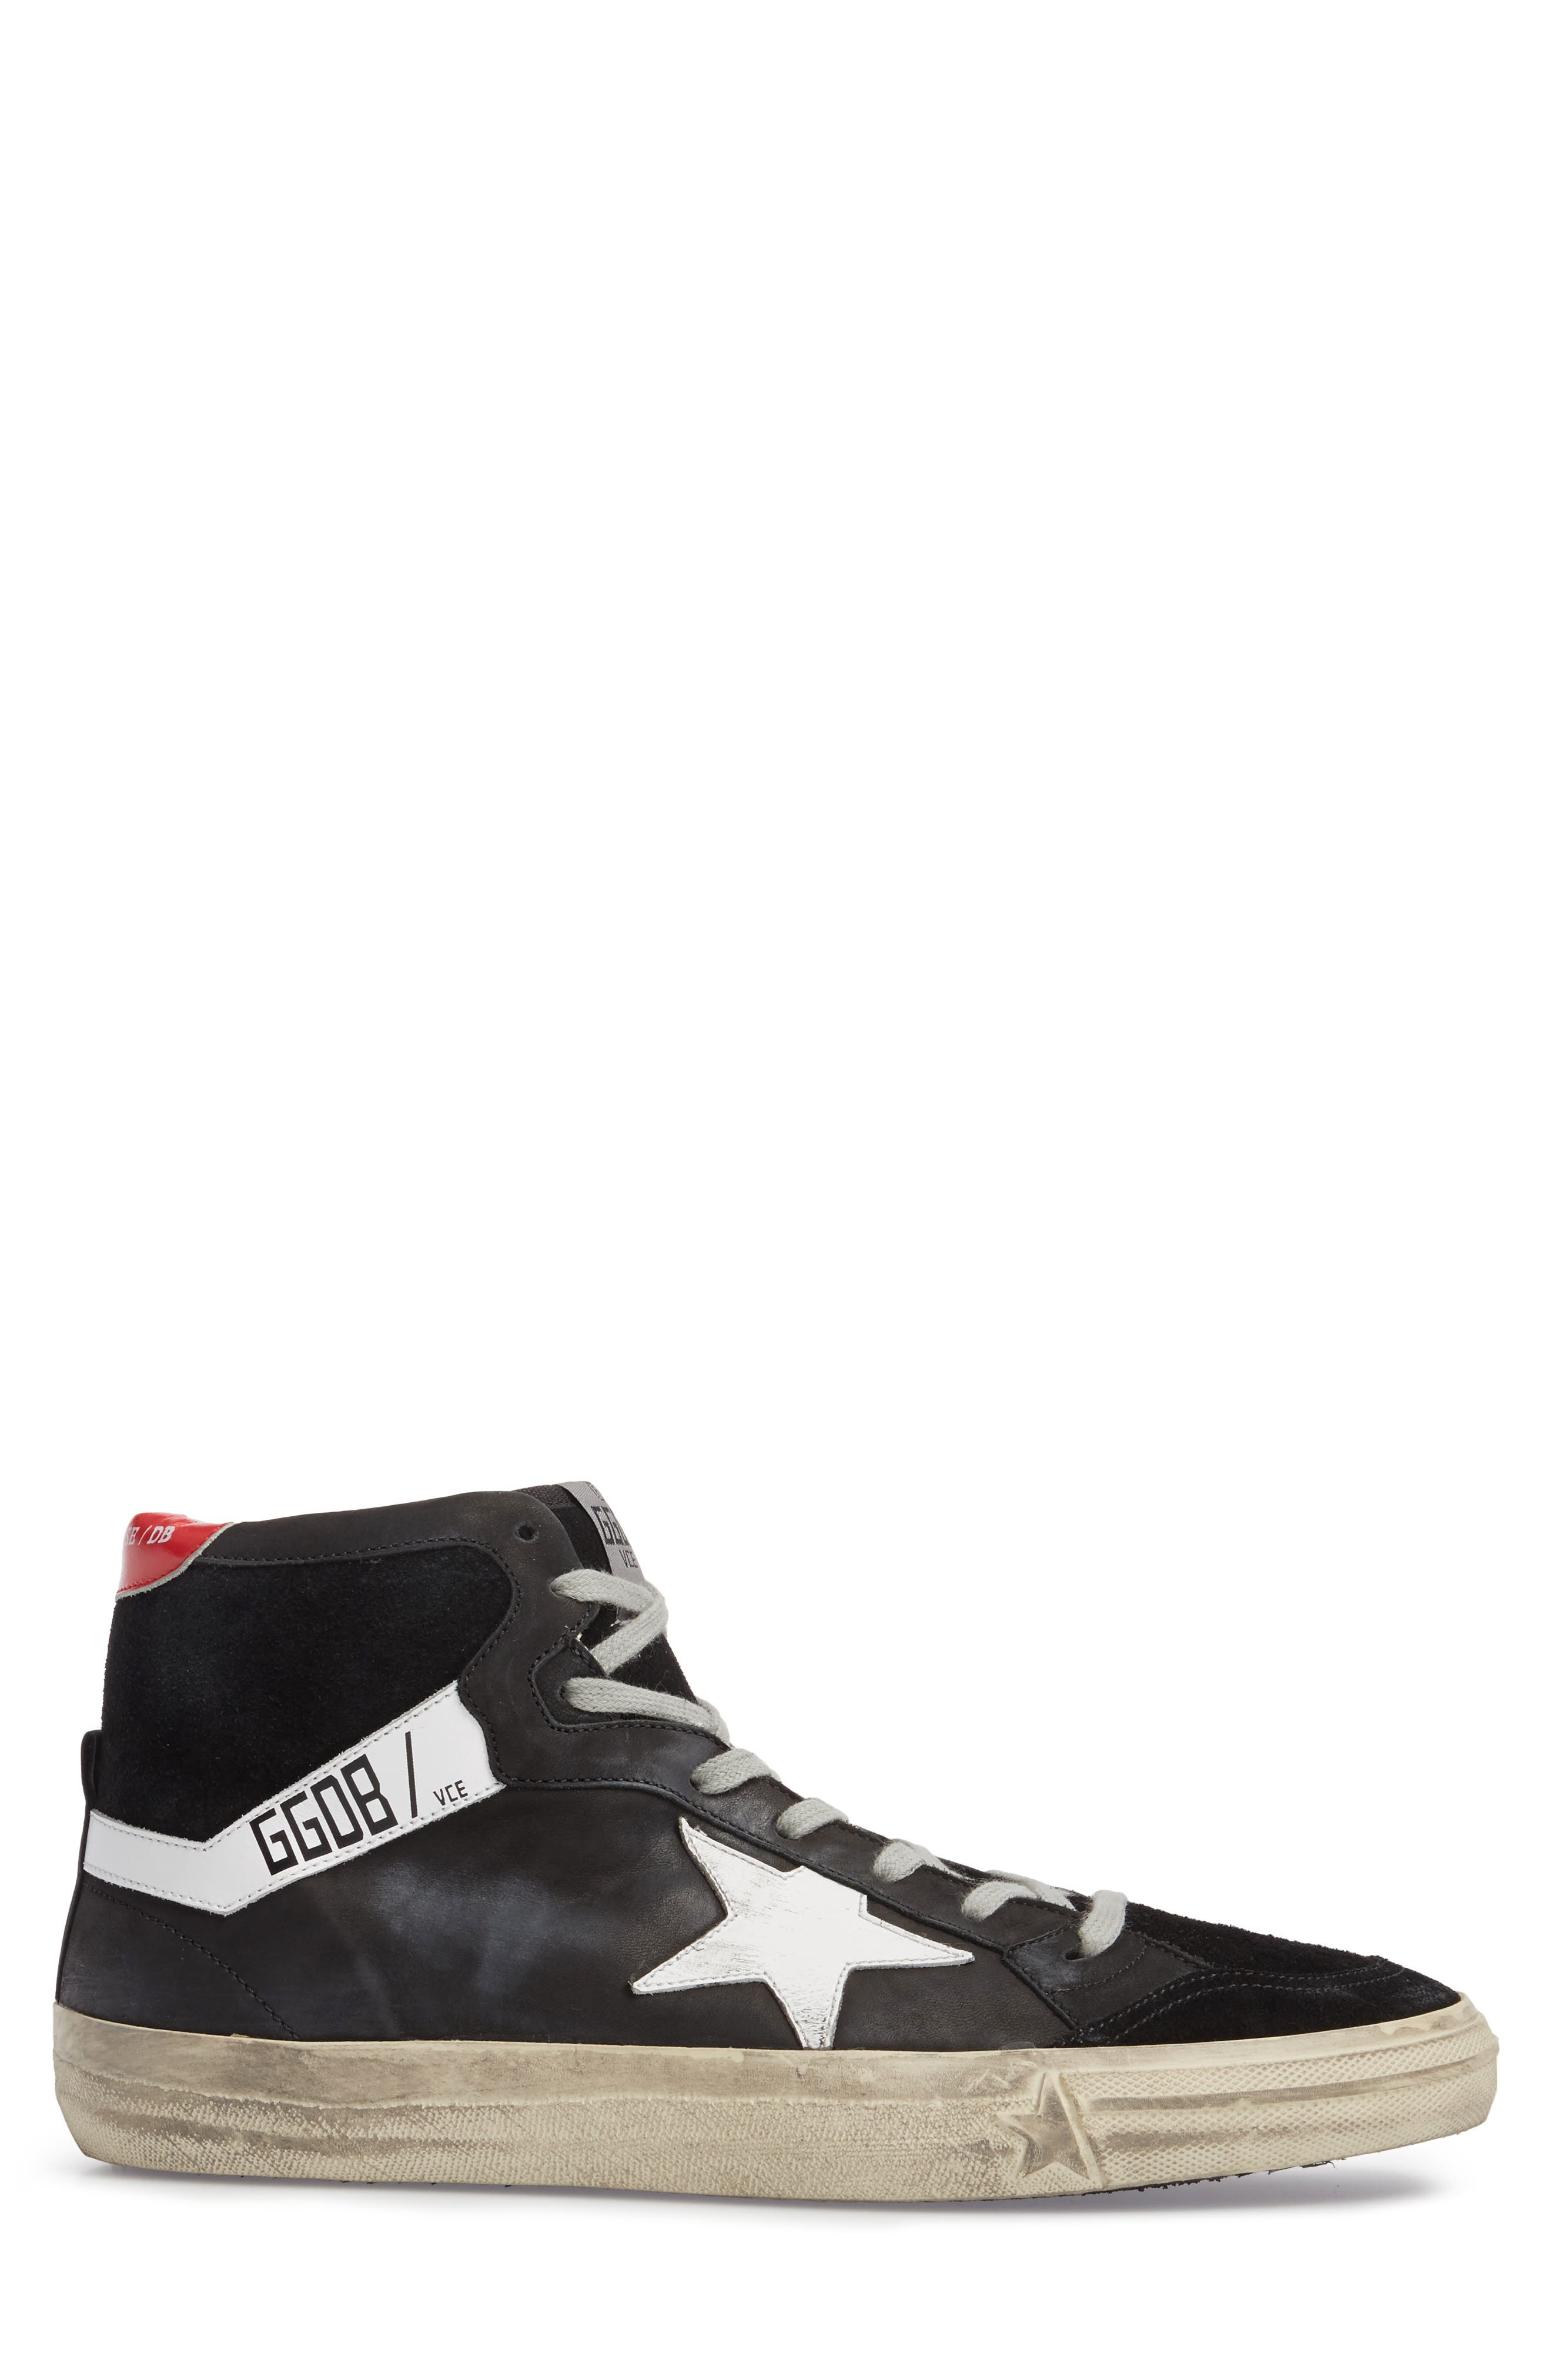 Alternate Image 3  - Golden Goose High Top Sneaker (Men)